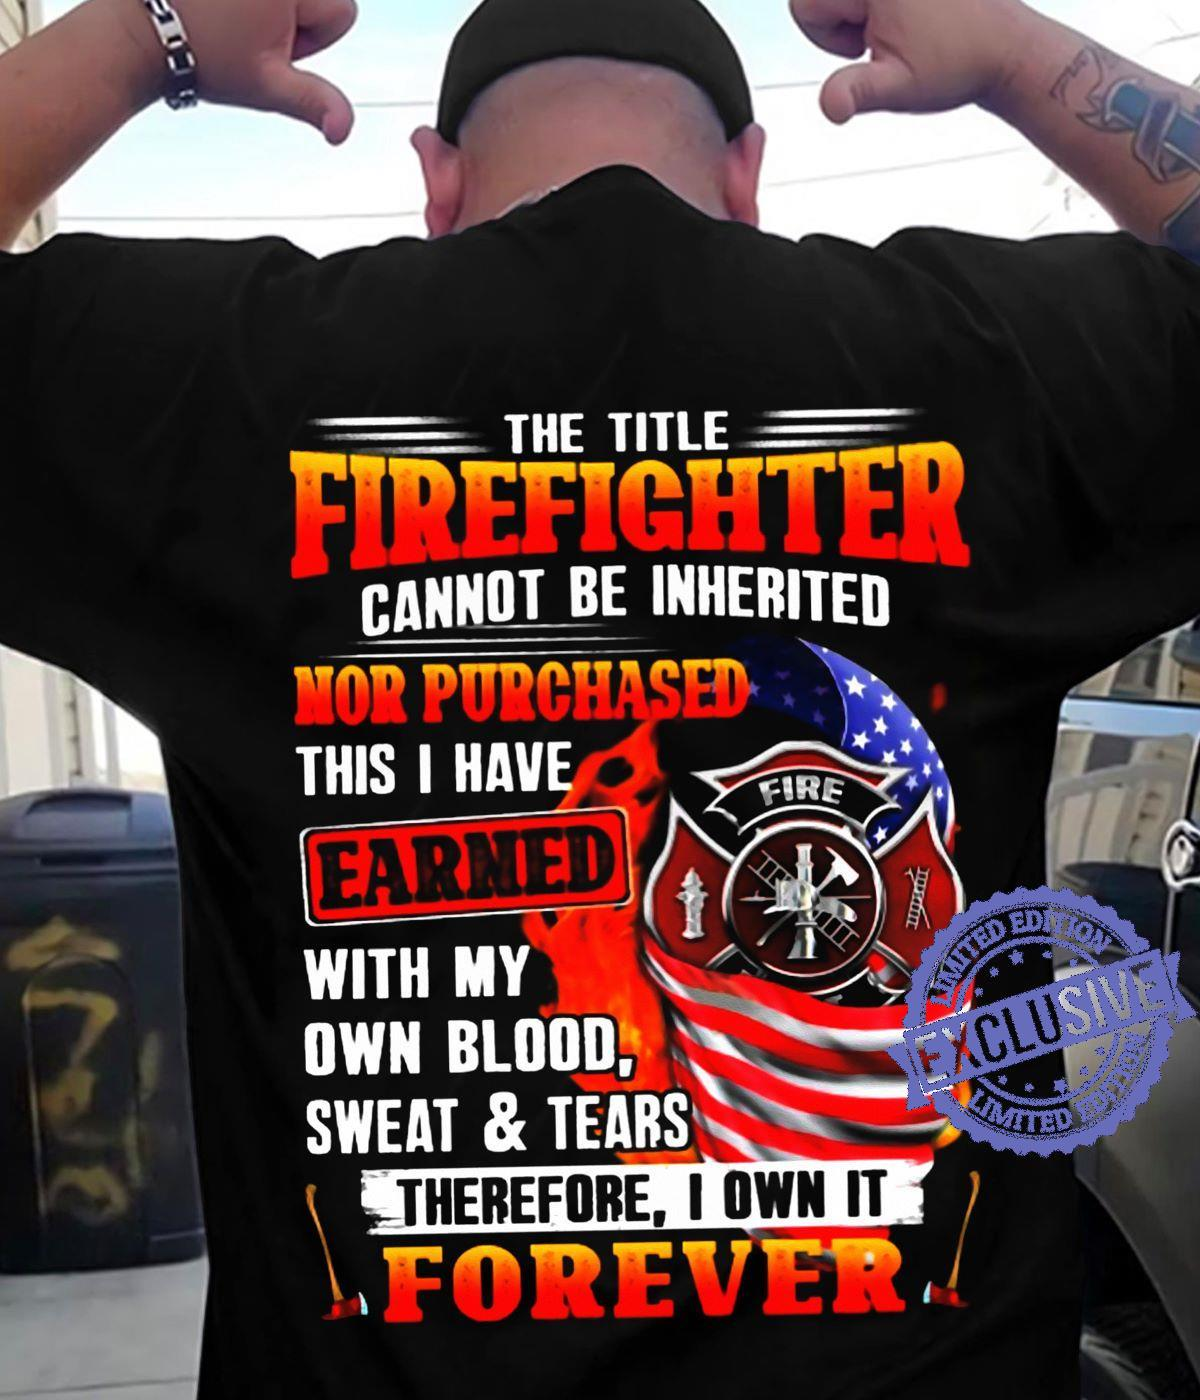 The title firefighter cannot be inherited nor purchased this i have earned with my own blood sweat tears therefore i own it forever shirt